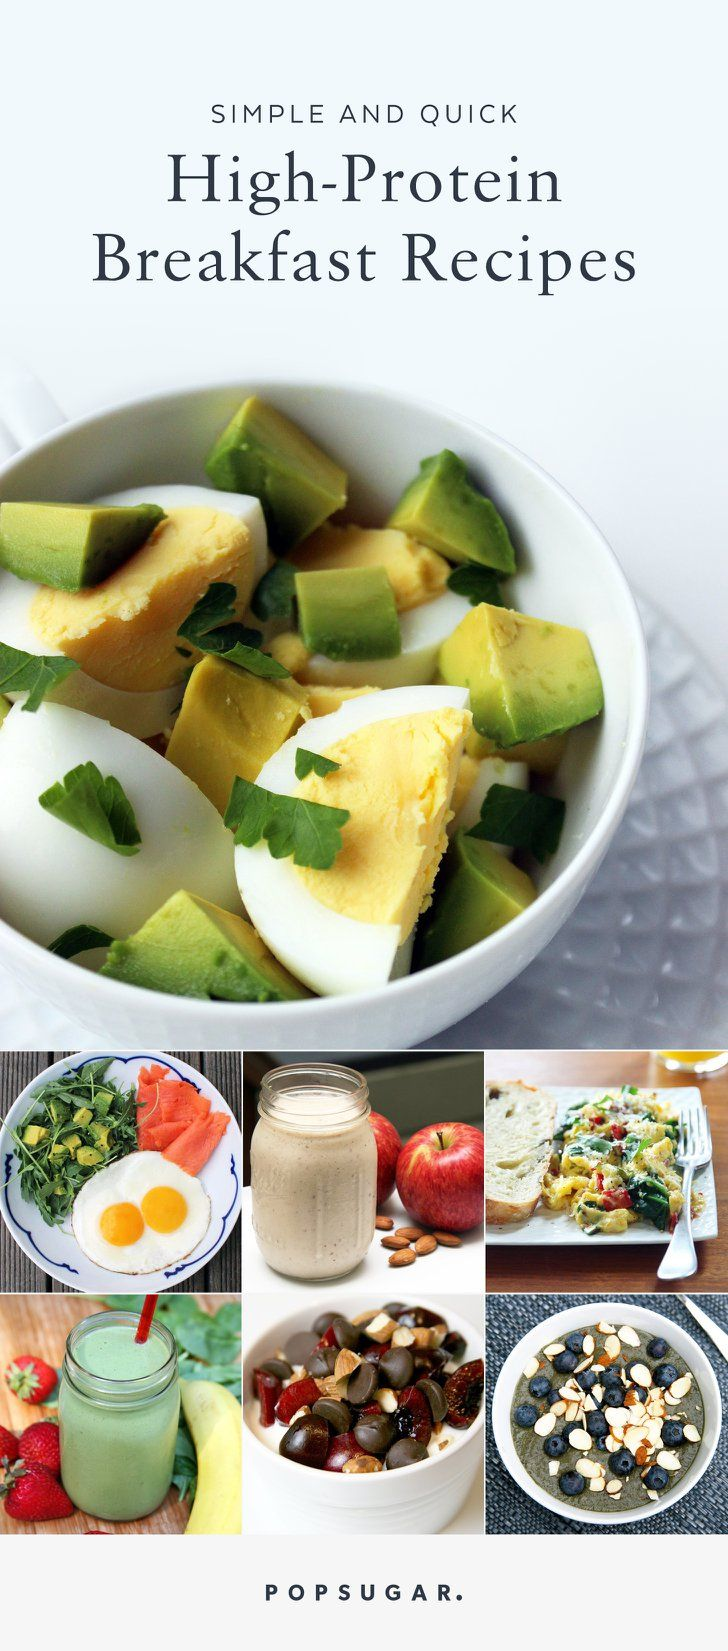 21 High-Protein Breakfasts That Barely Take Any Time to Prepare